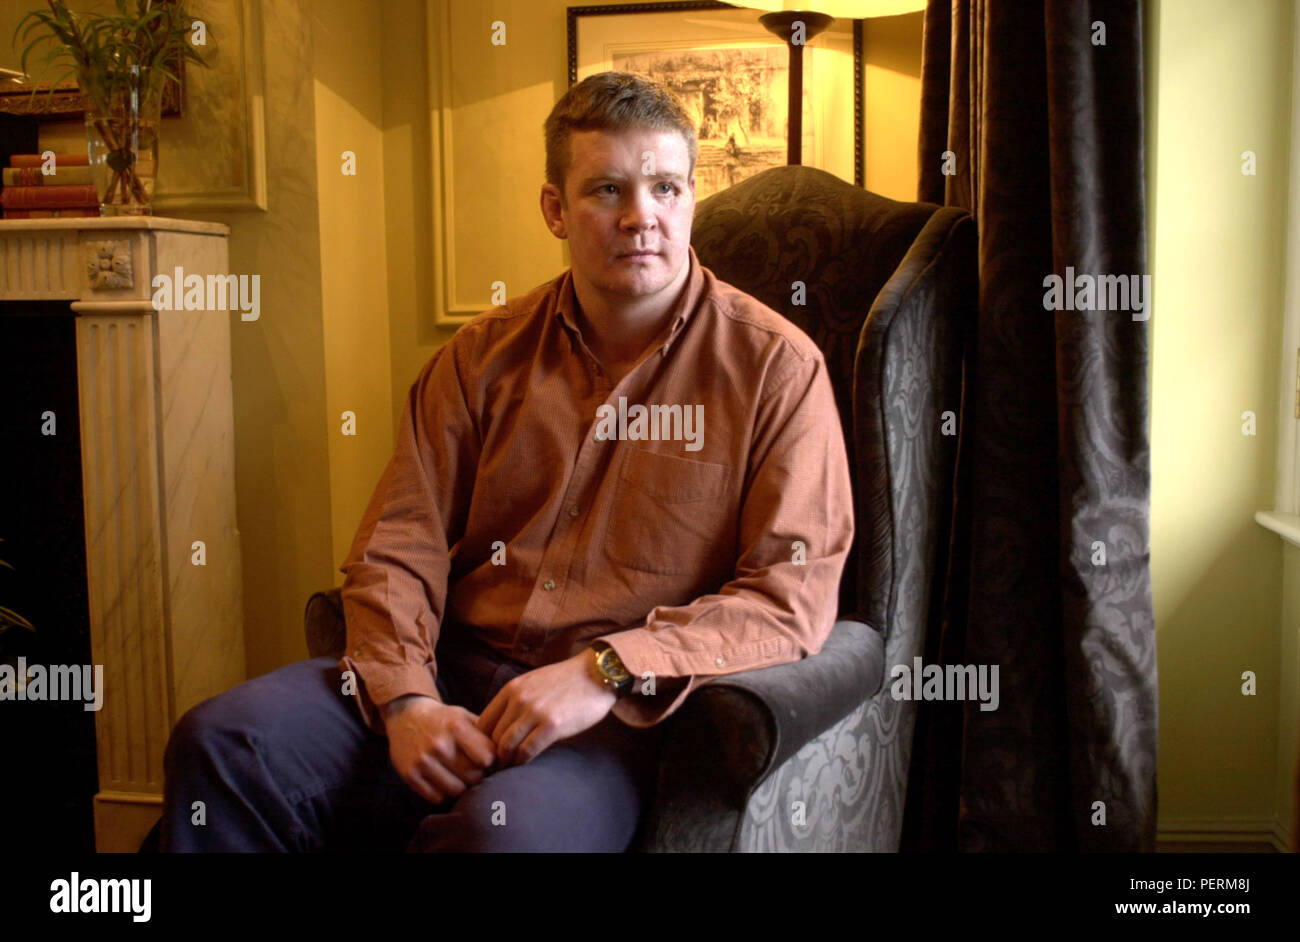 London,England,UK: March 13,2000. TREVOR REES-JONES The Bodyguard who survived the car crash in Paris that killed Princess Diana. Talking about his bo Stock Photo